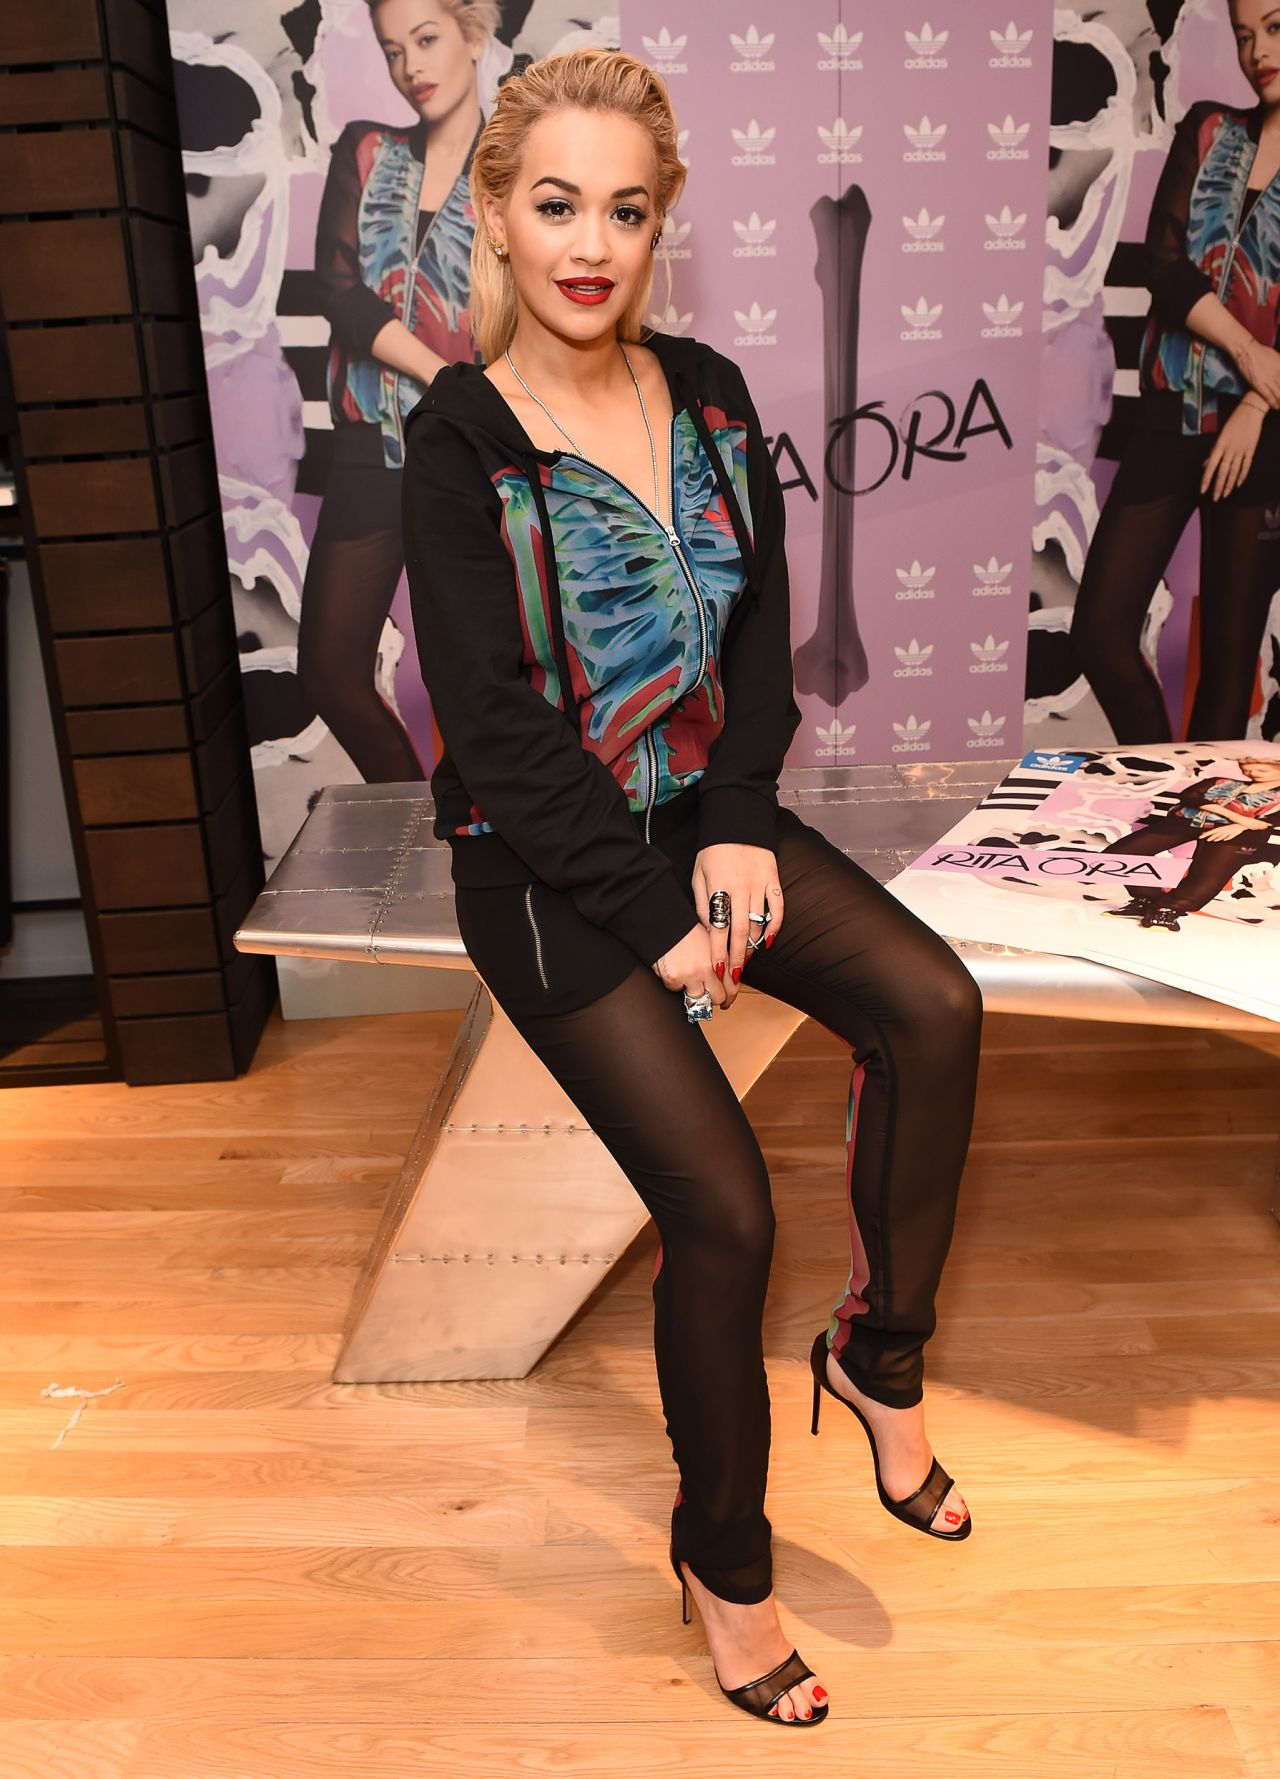 Rita Ora - Celebrating Her Adidas Collection at Harrods in London, March 2015